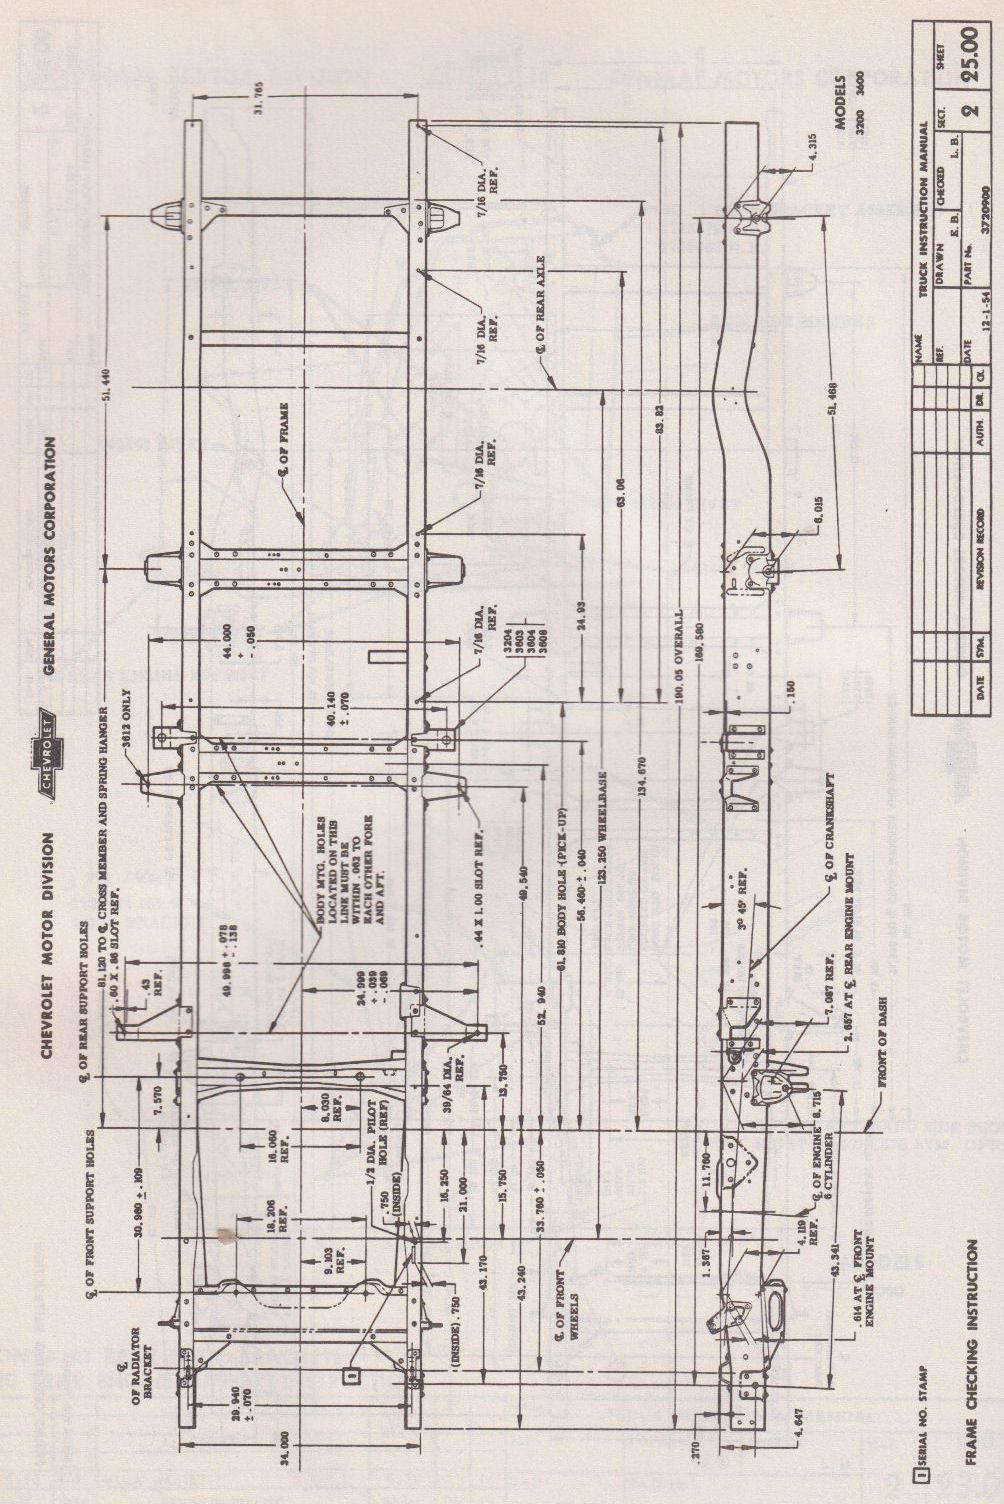 1955 Chevy 3600 3/4 ton (Frame) | Plans (Trucks) | Pinterest